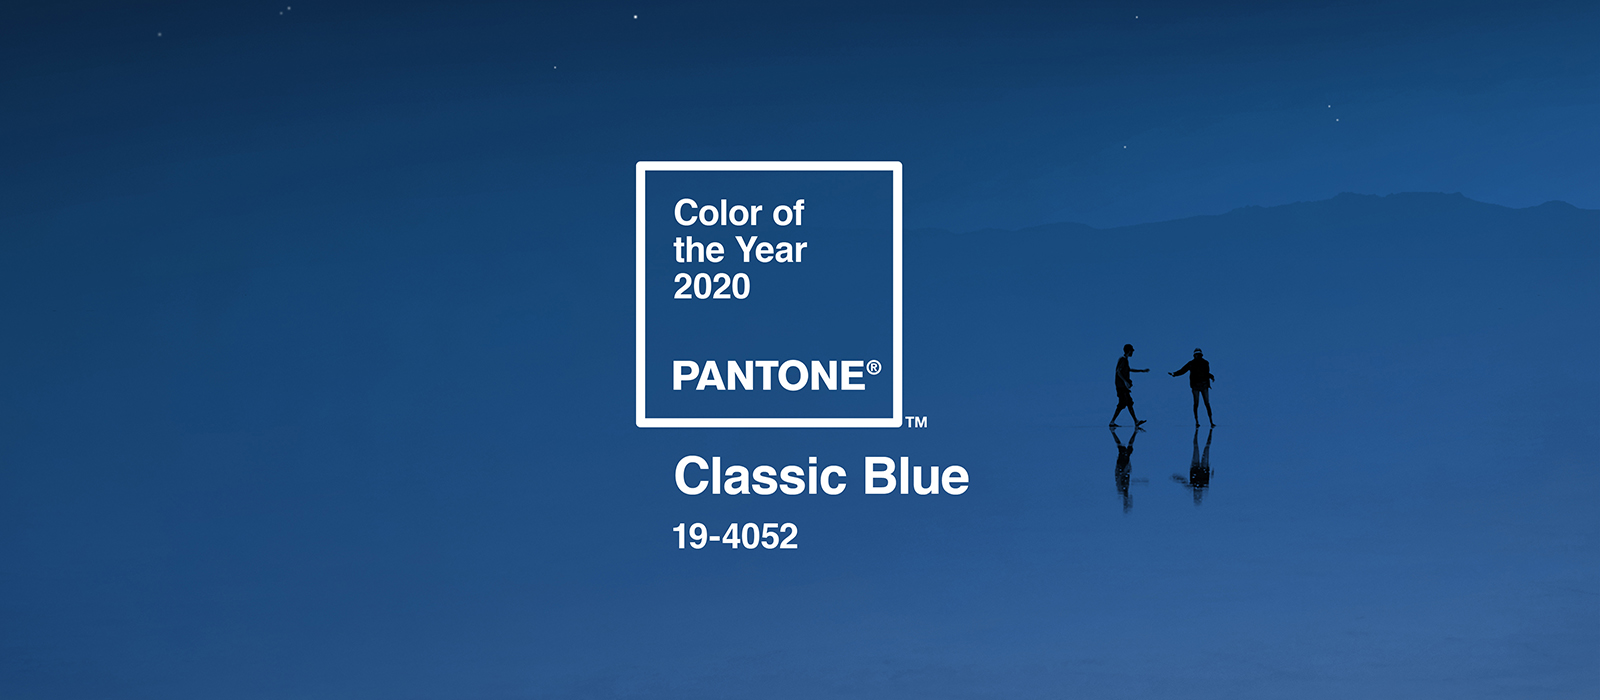 Feeling Blue? So is Pantone in 2020